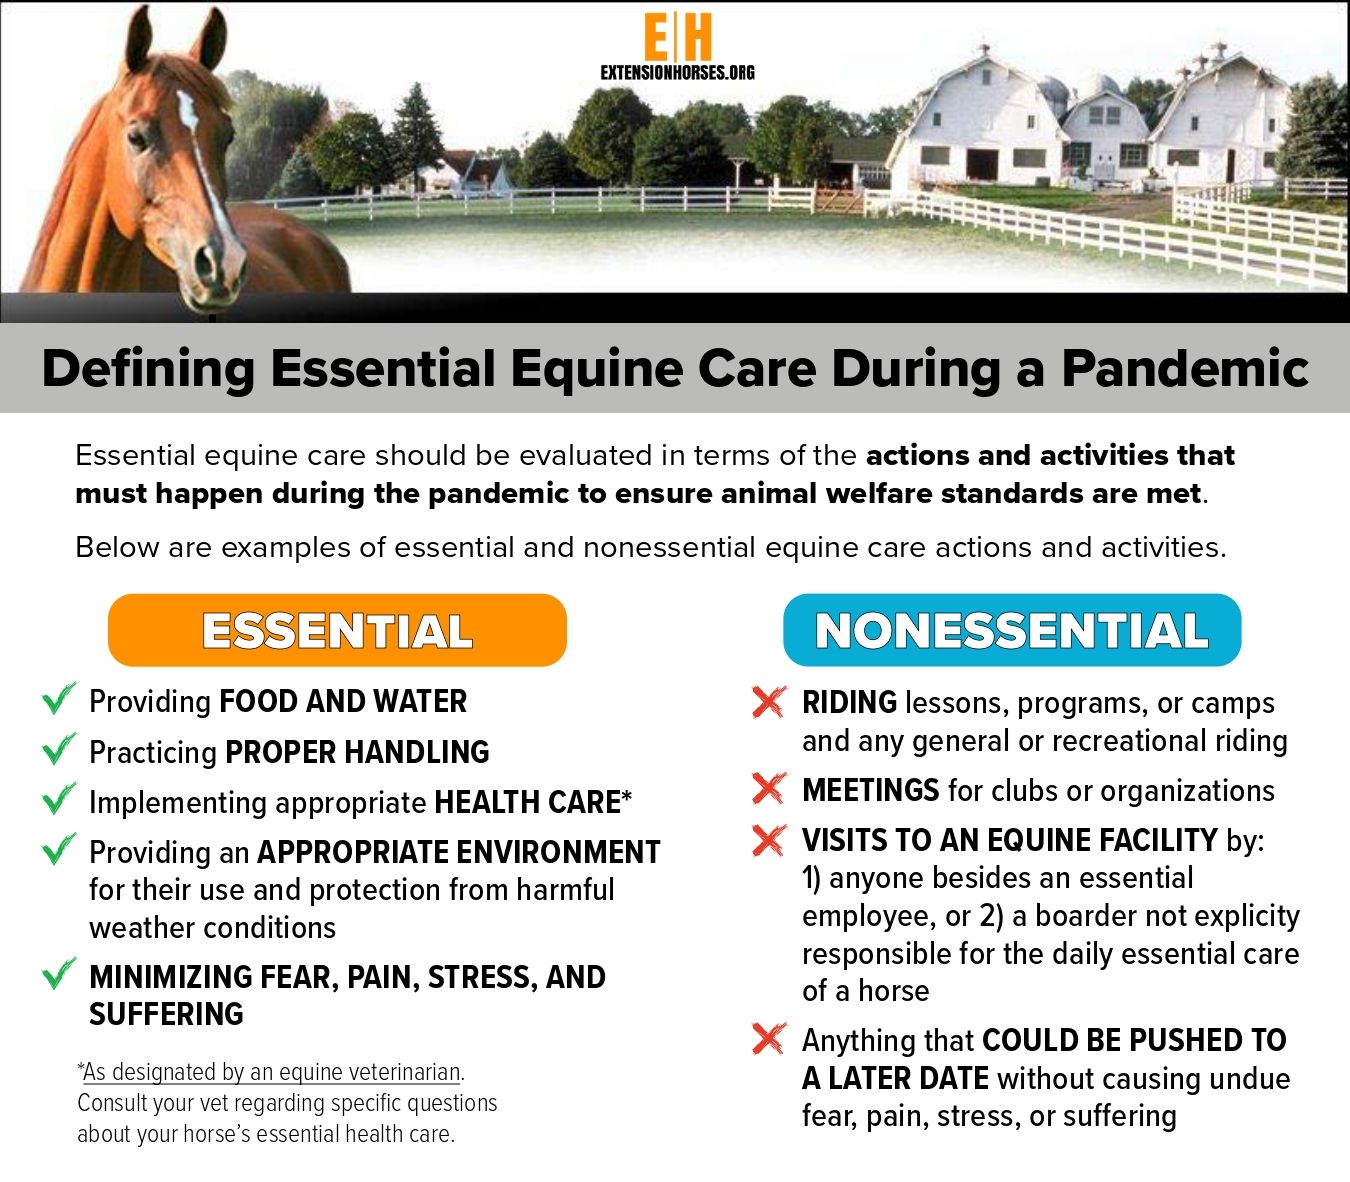 COVID-19 Infographic on Essential and Nonessential Equine Care